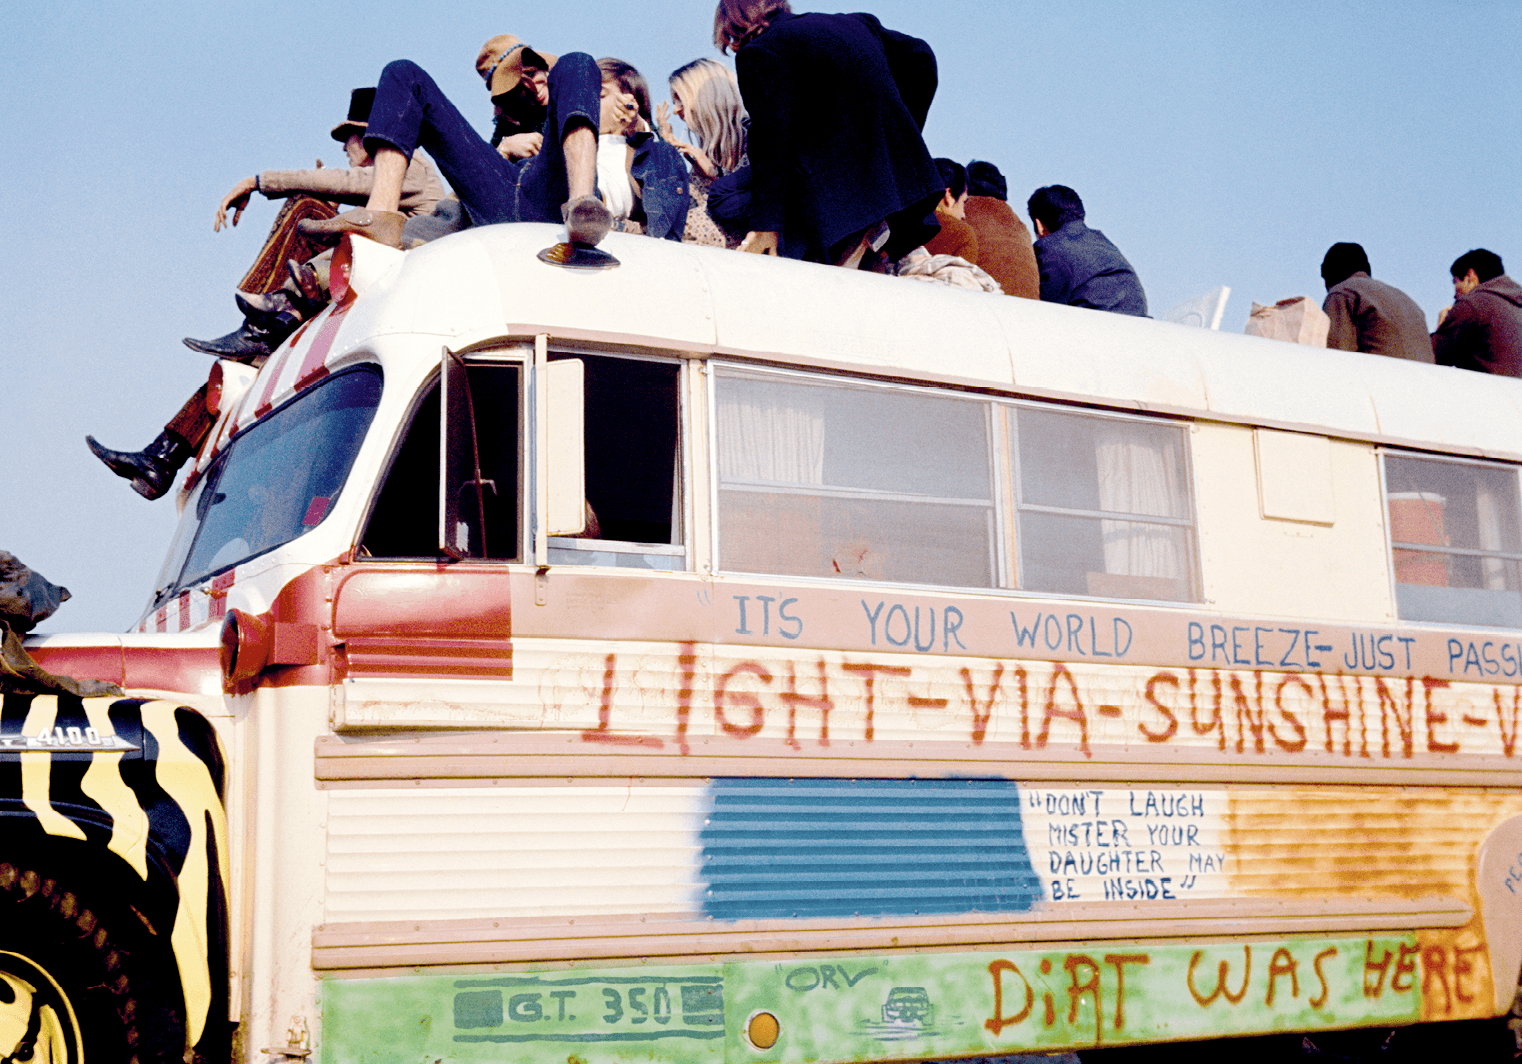 A group of hippies sit on top of a graffi ti-painted bus during Altamont free rock concert, 1969.